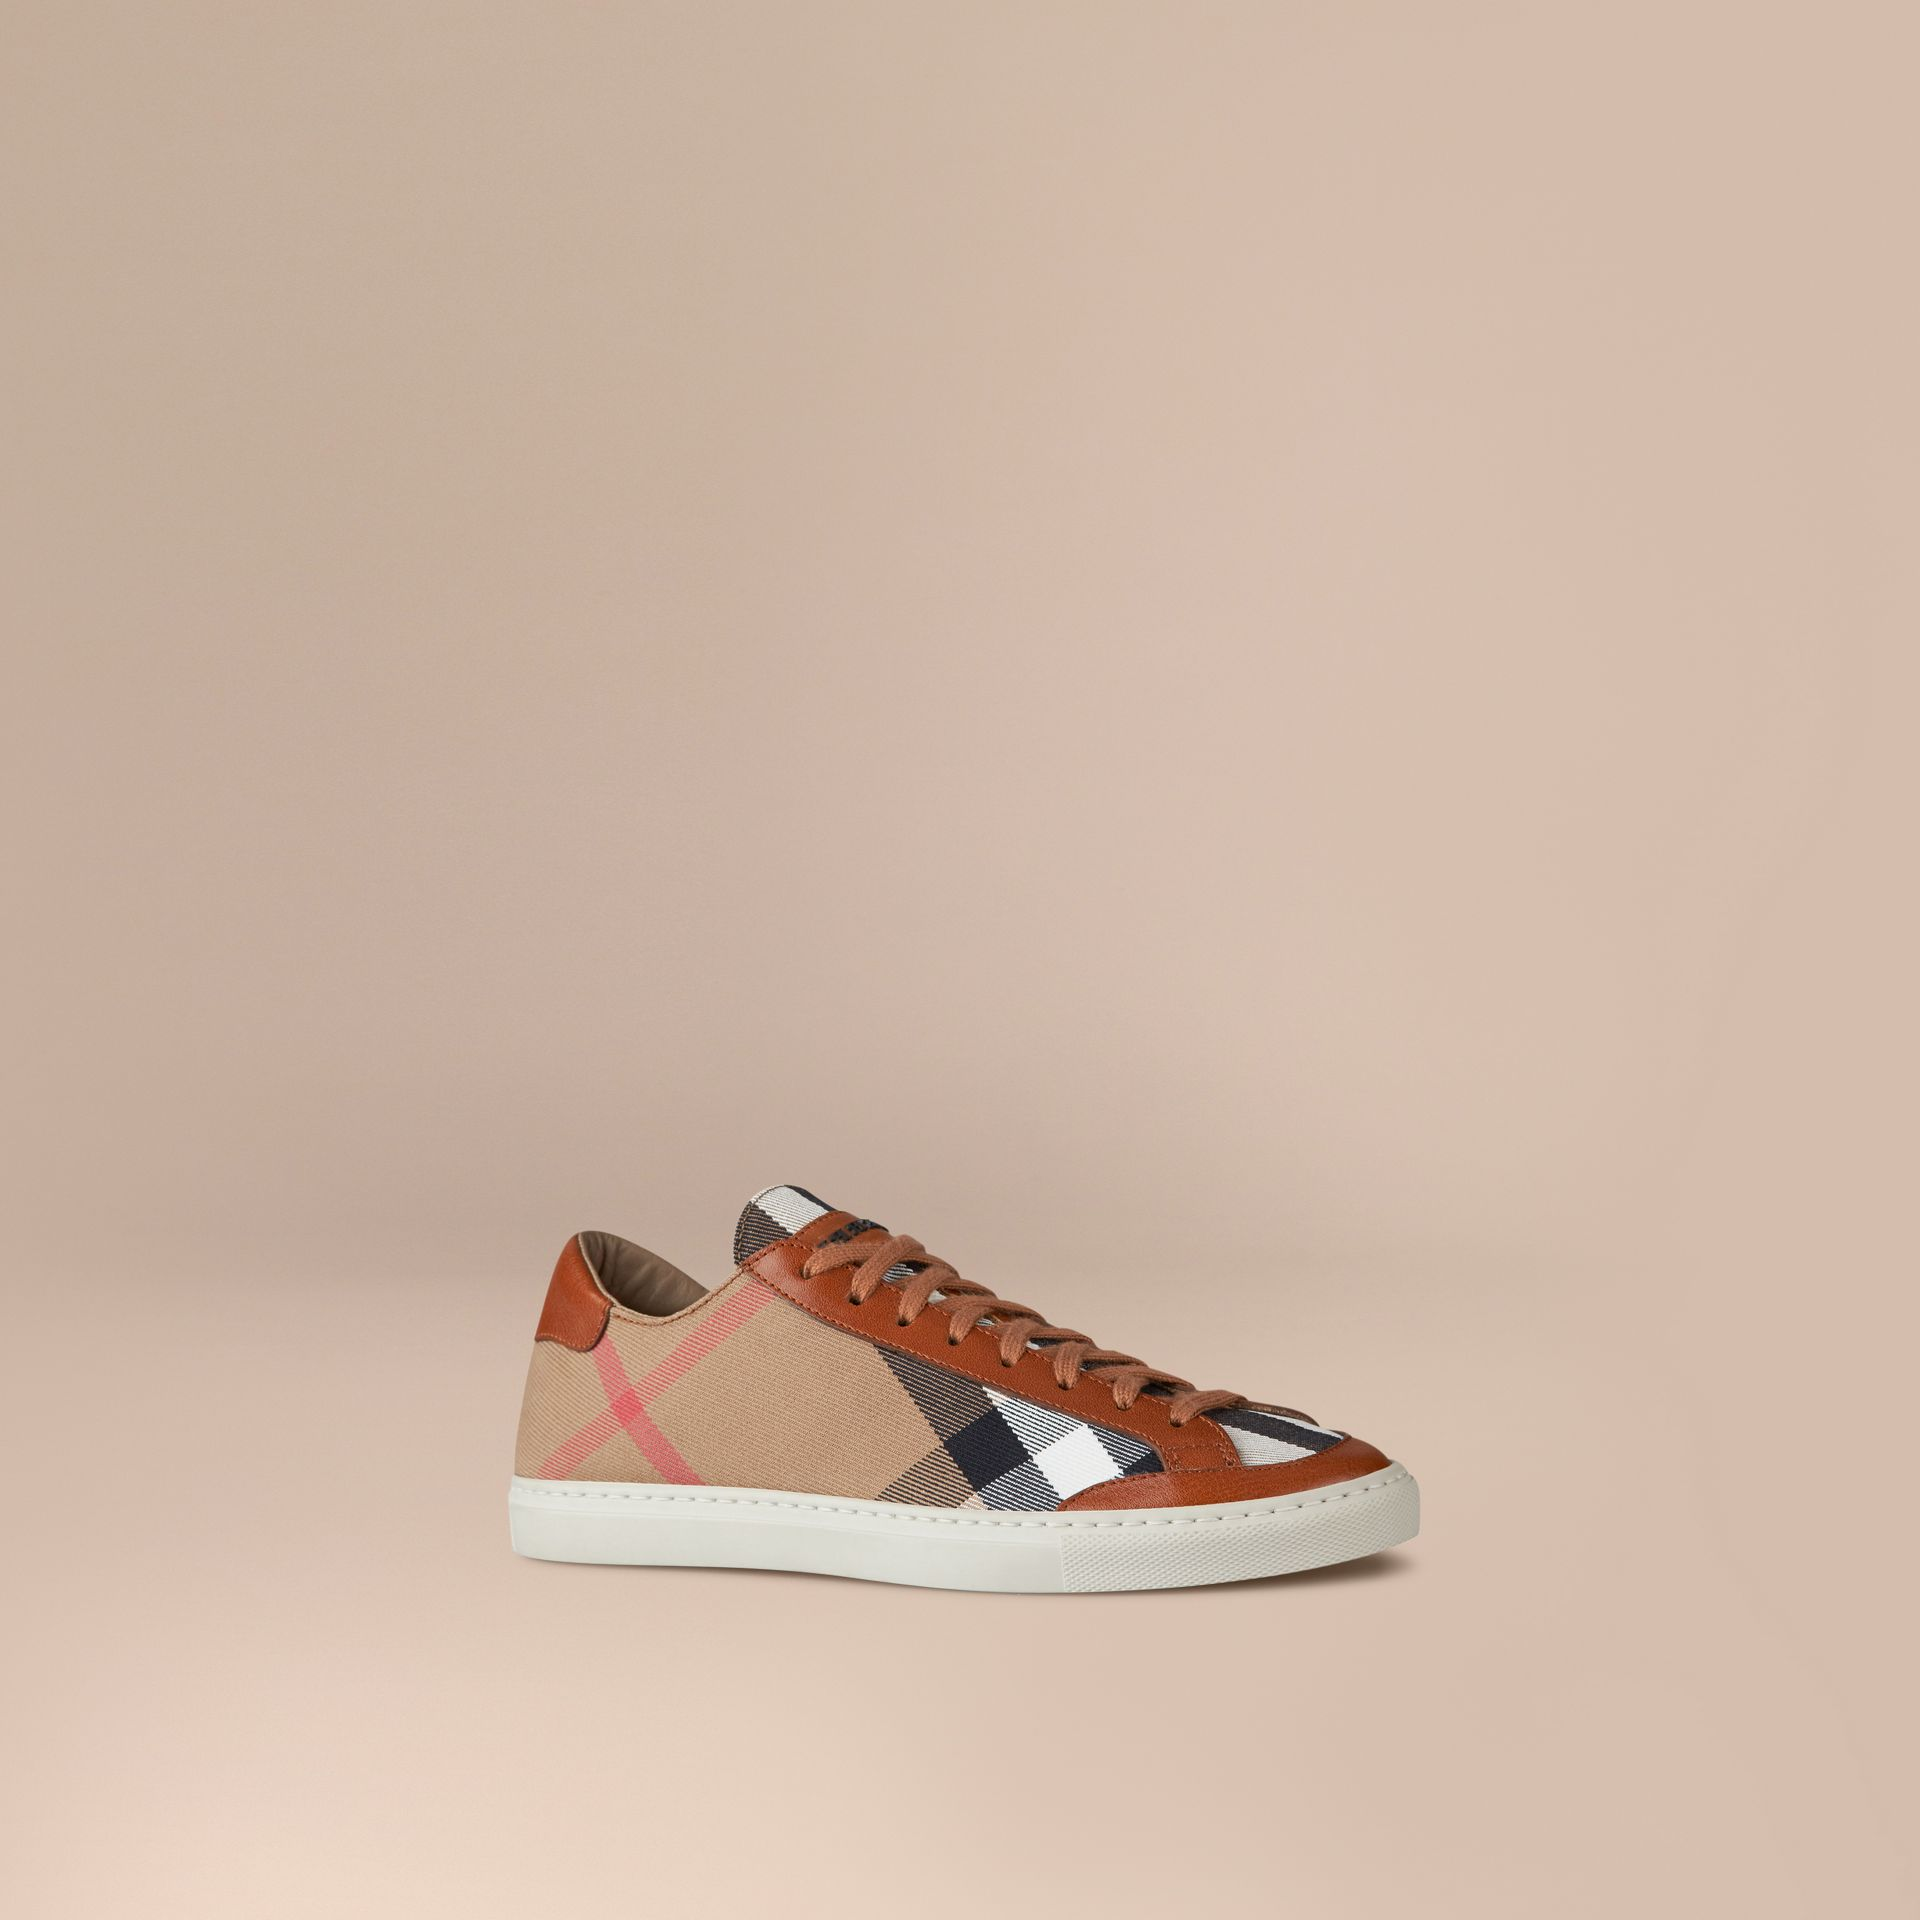 Marroncino Sneakers in tela House check - immagine della galleria 1